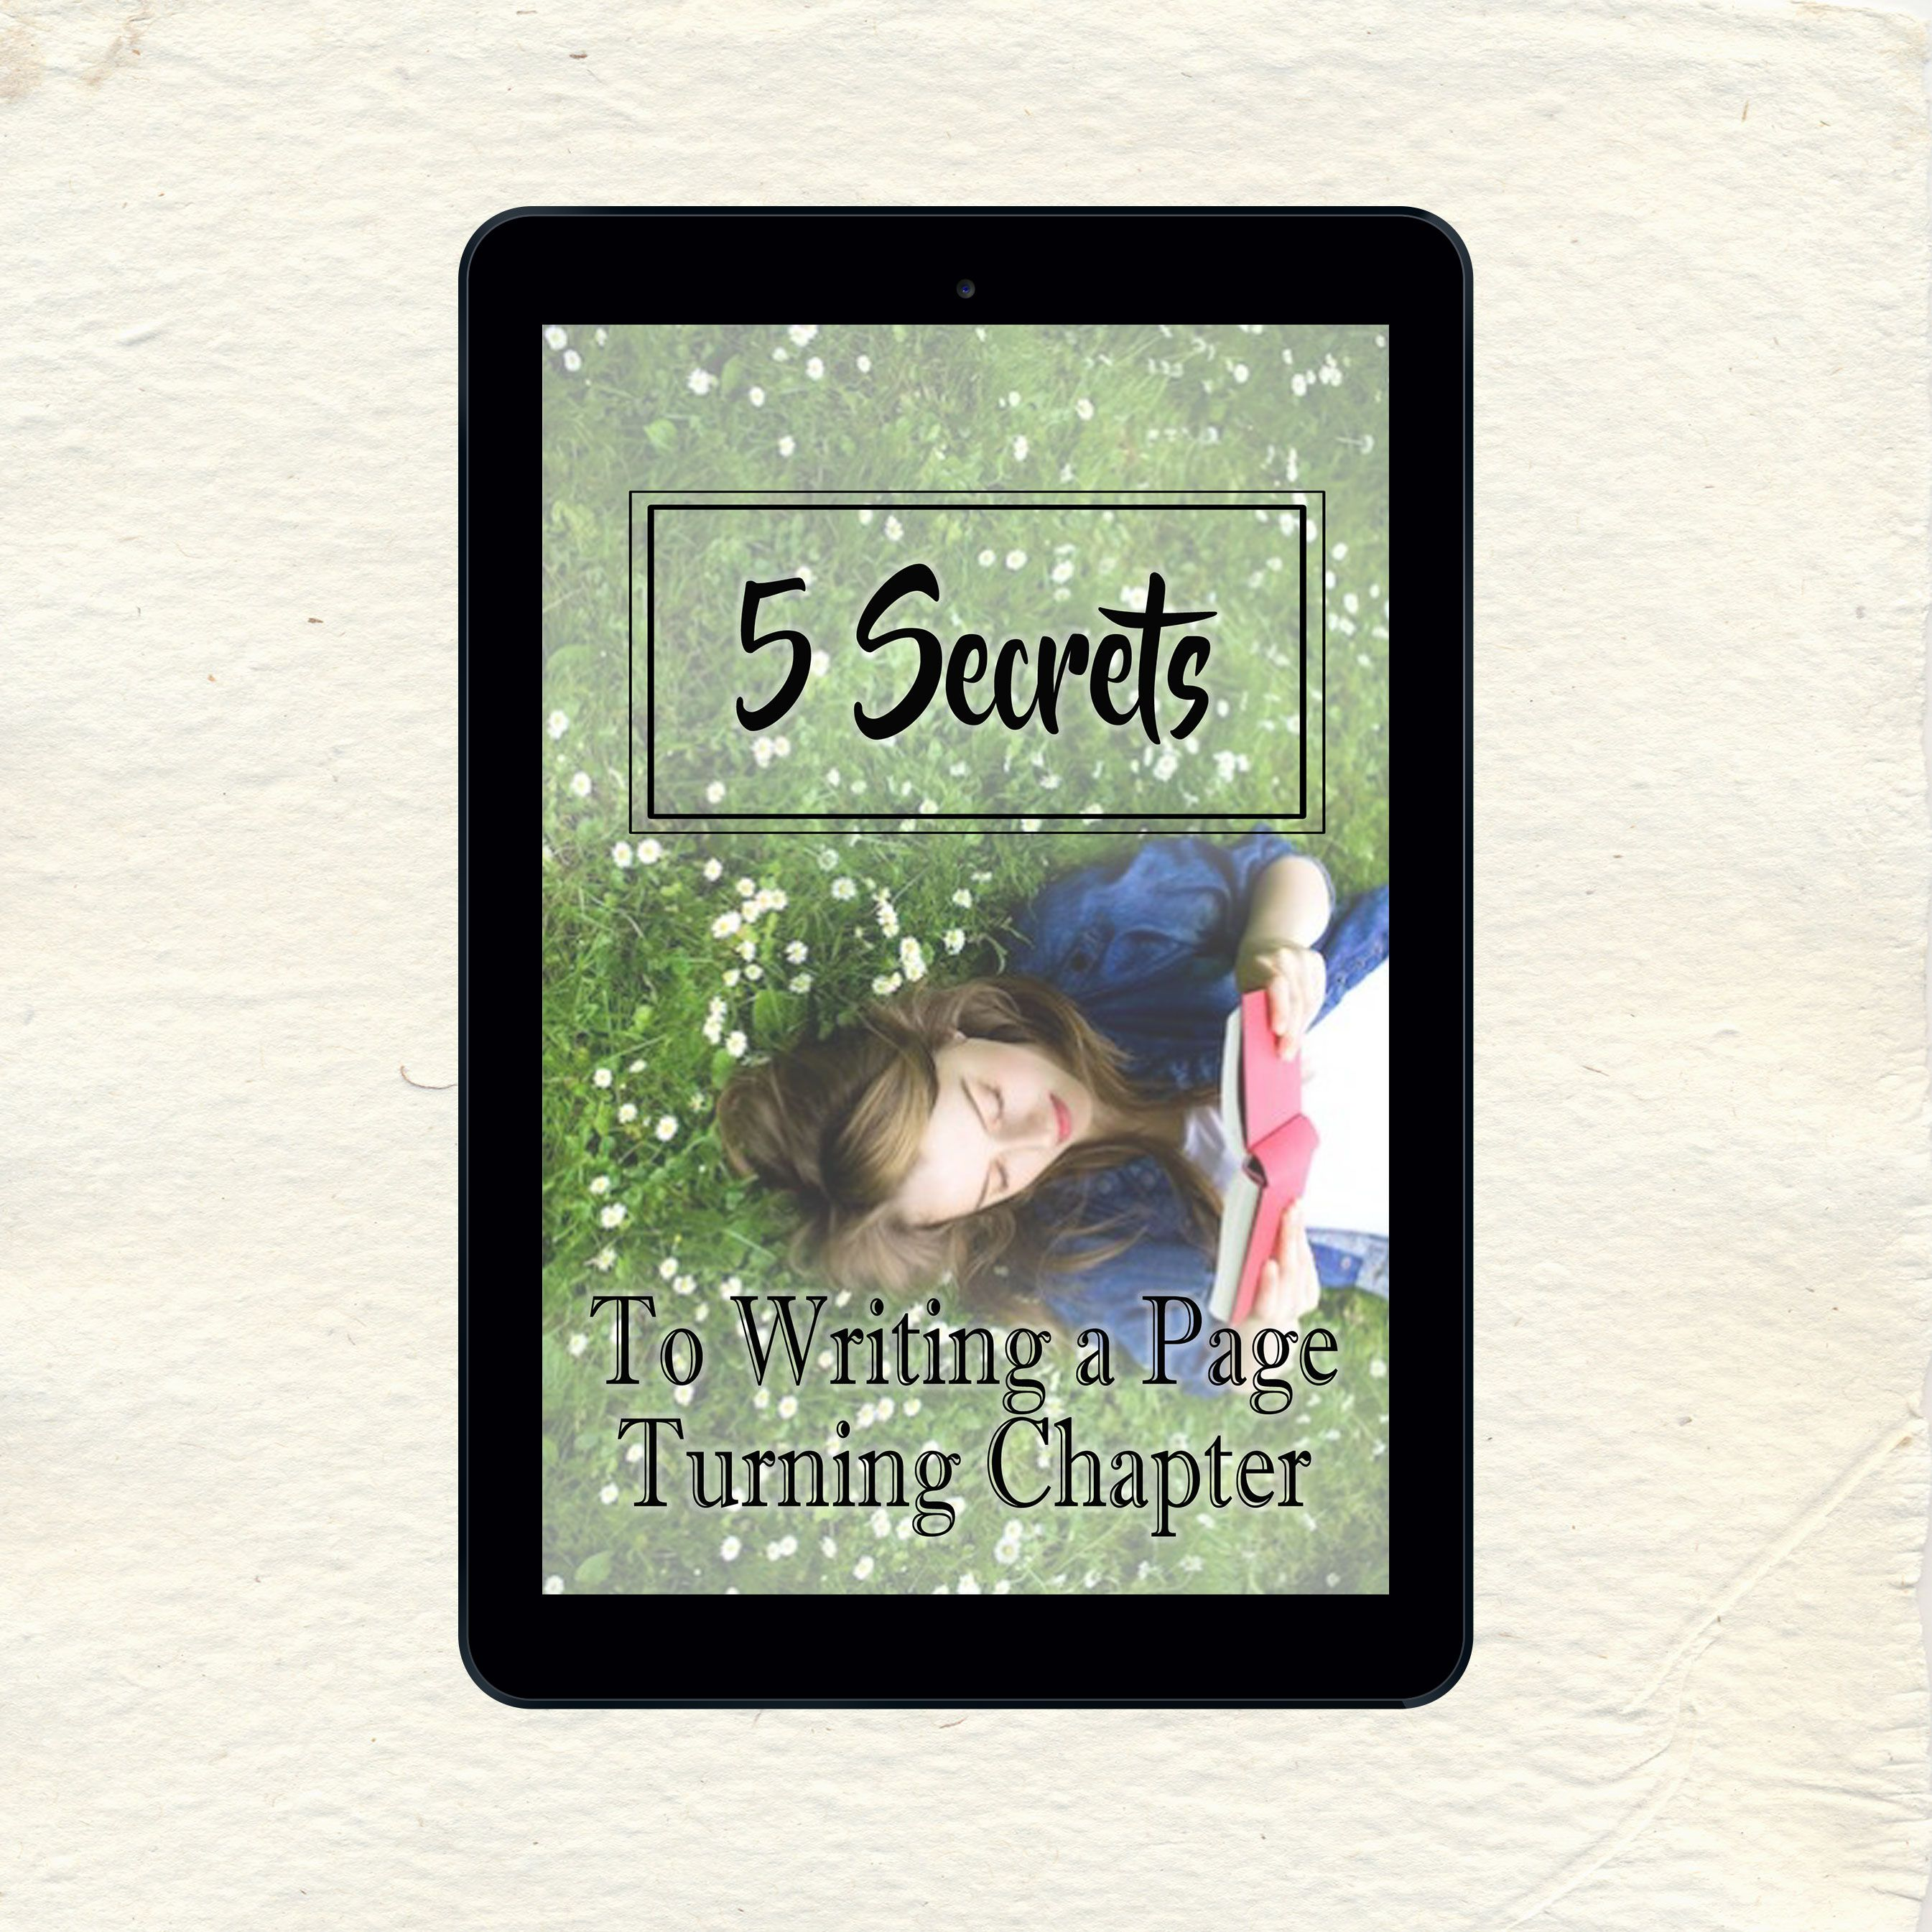 5 Secrets to writing a Page Turning Chapter now on my Workbooks page! #AutumnWriting #writingtips #writingcraft